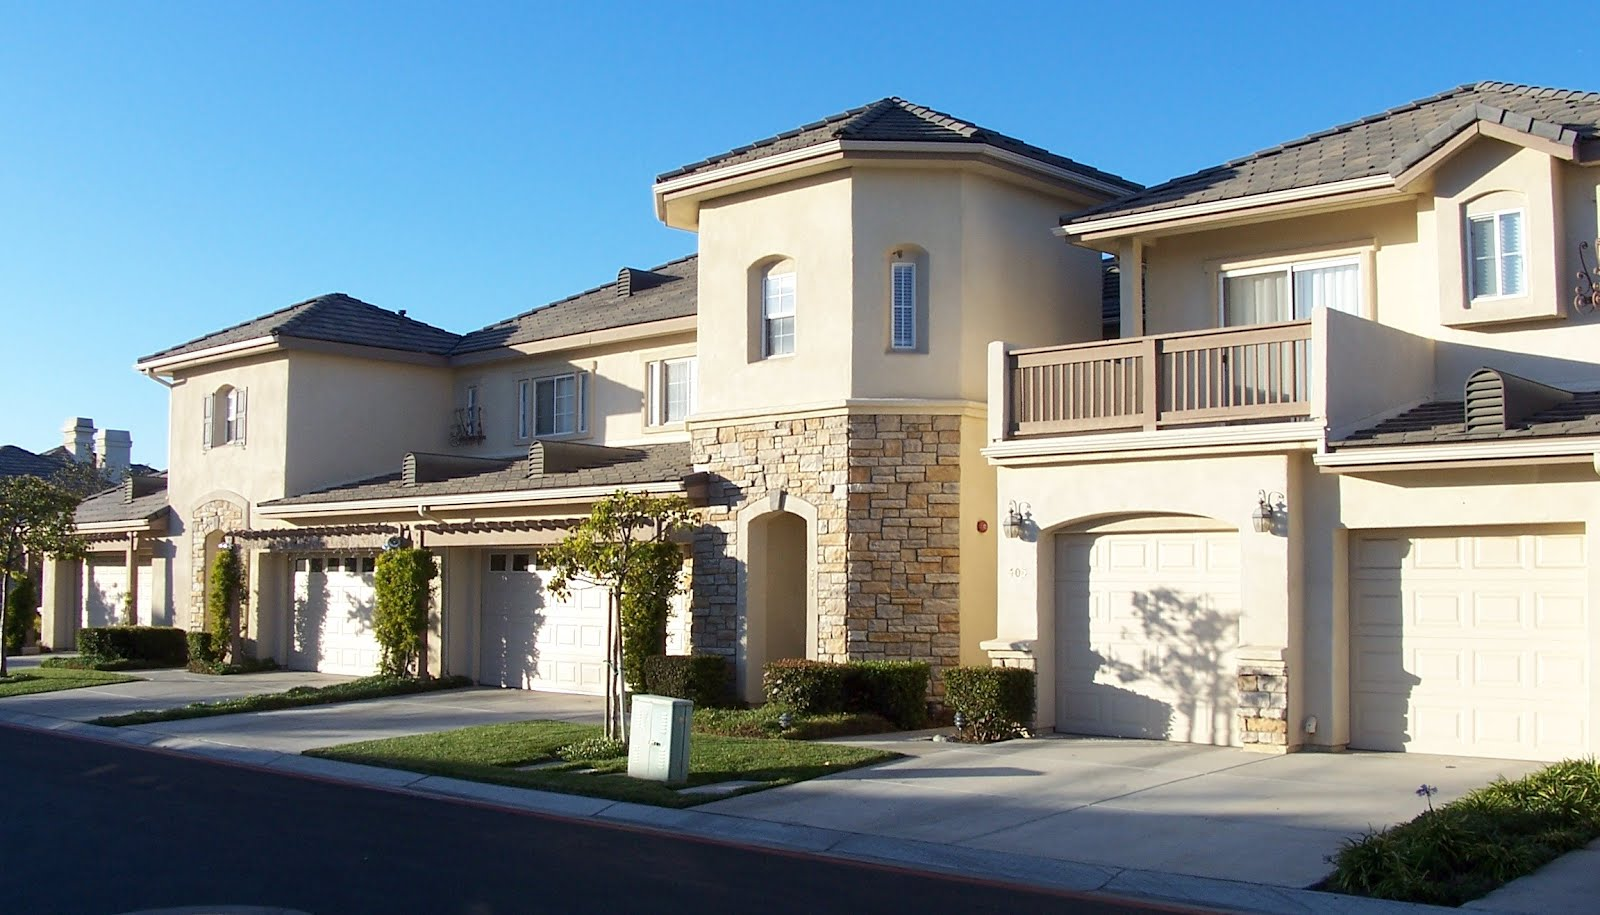 Somerset gardens santa maria orcutt luxury townhomes for Luxury townhouse designs